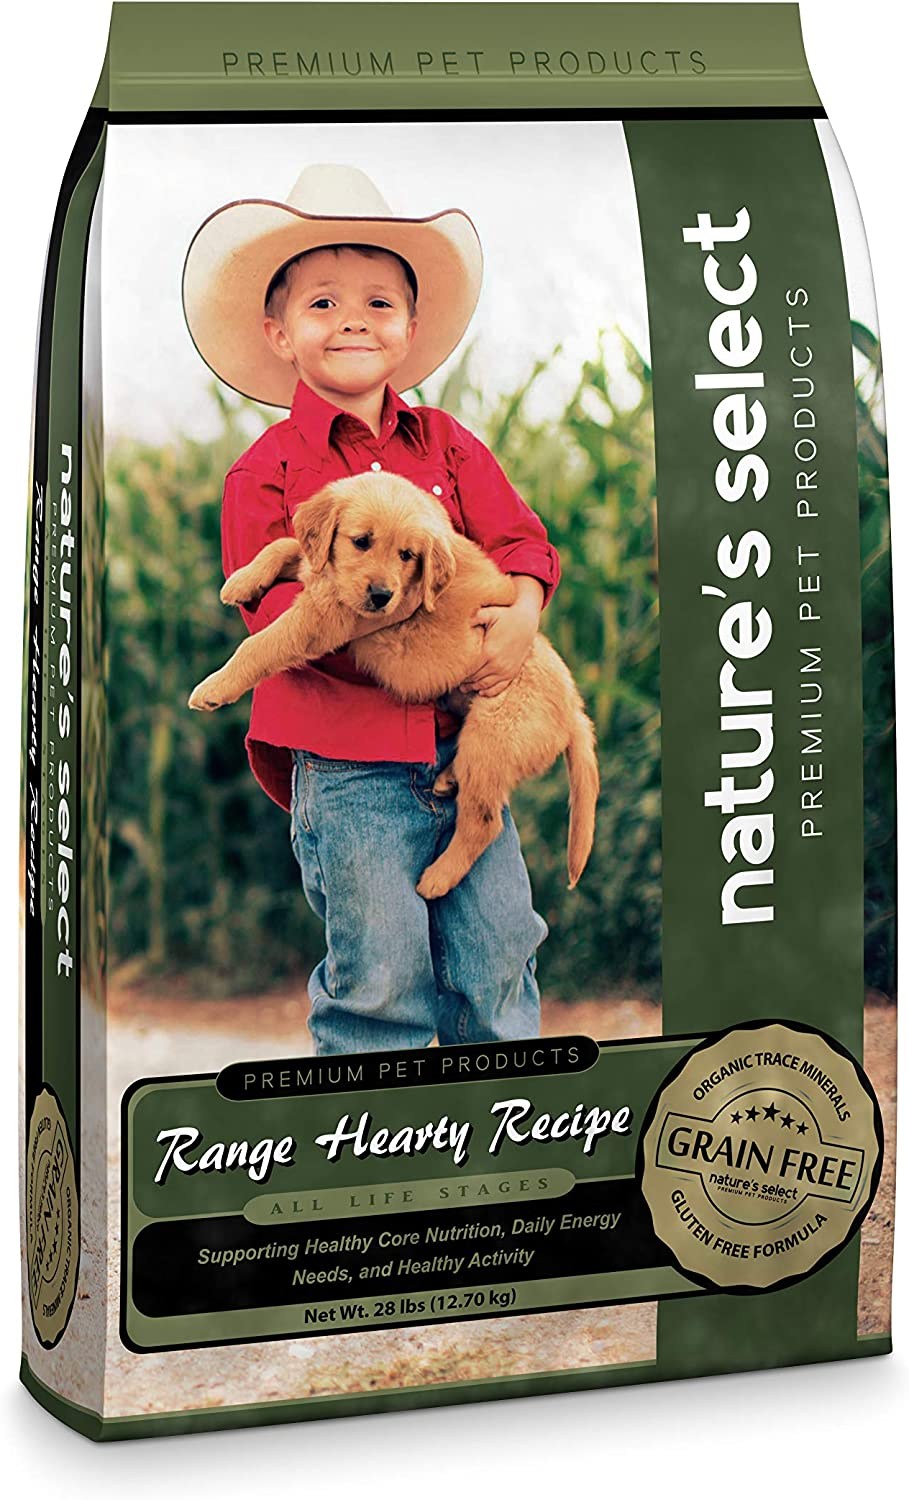 Nature's Select Range Max 46% OFF Hearty Recipe All items in the store - Dog Beef Free F Grain Dry